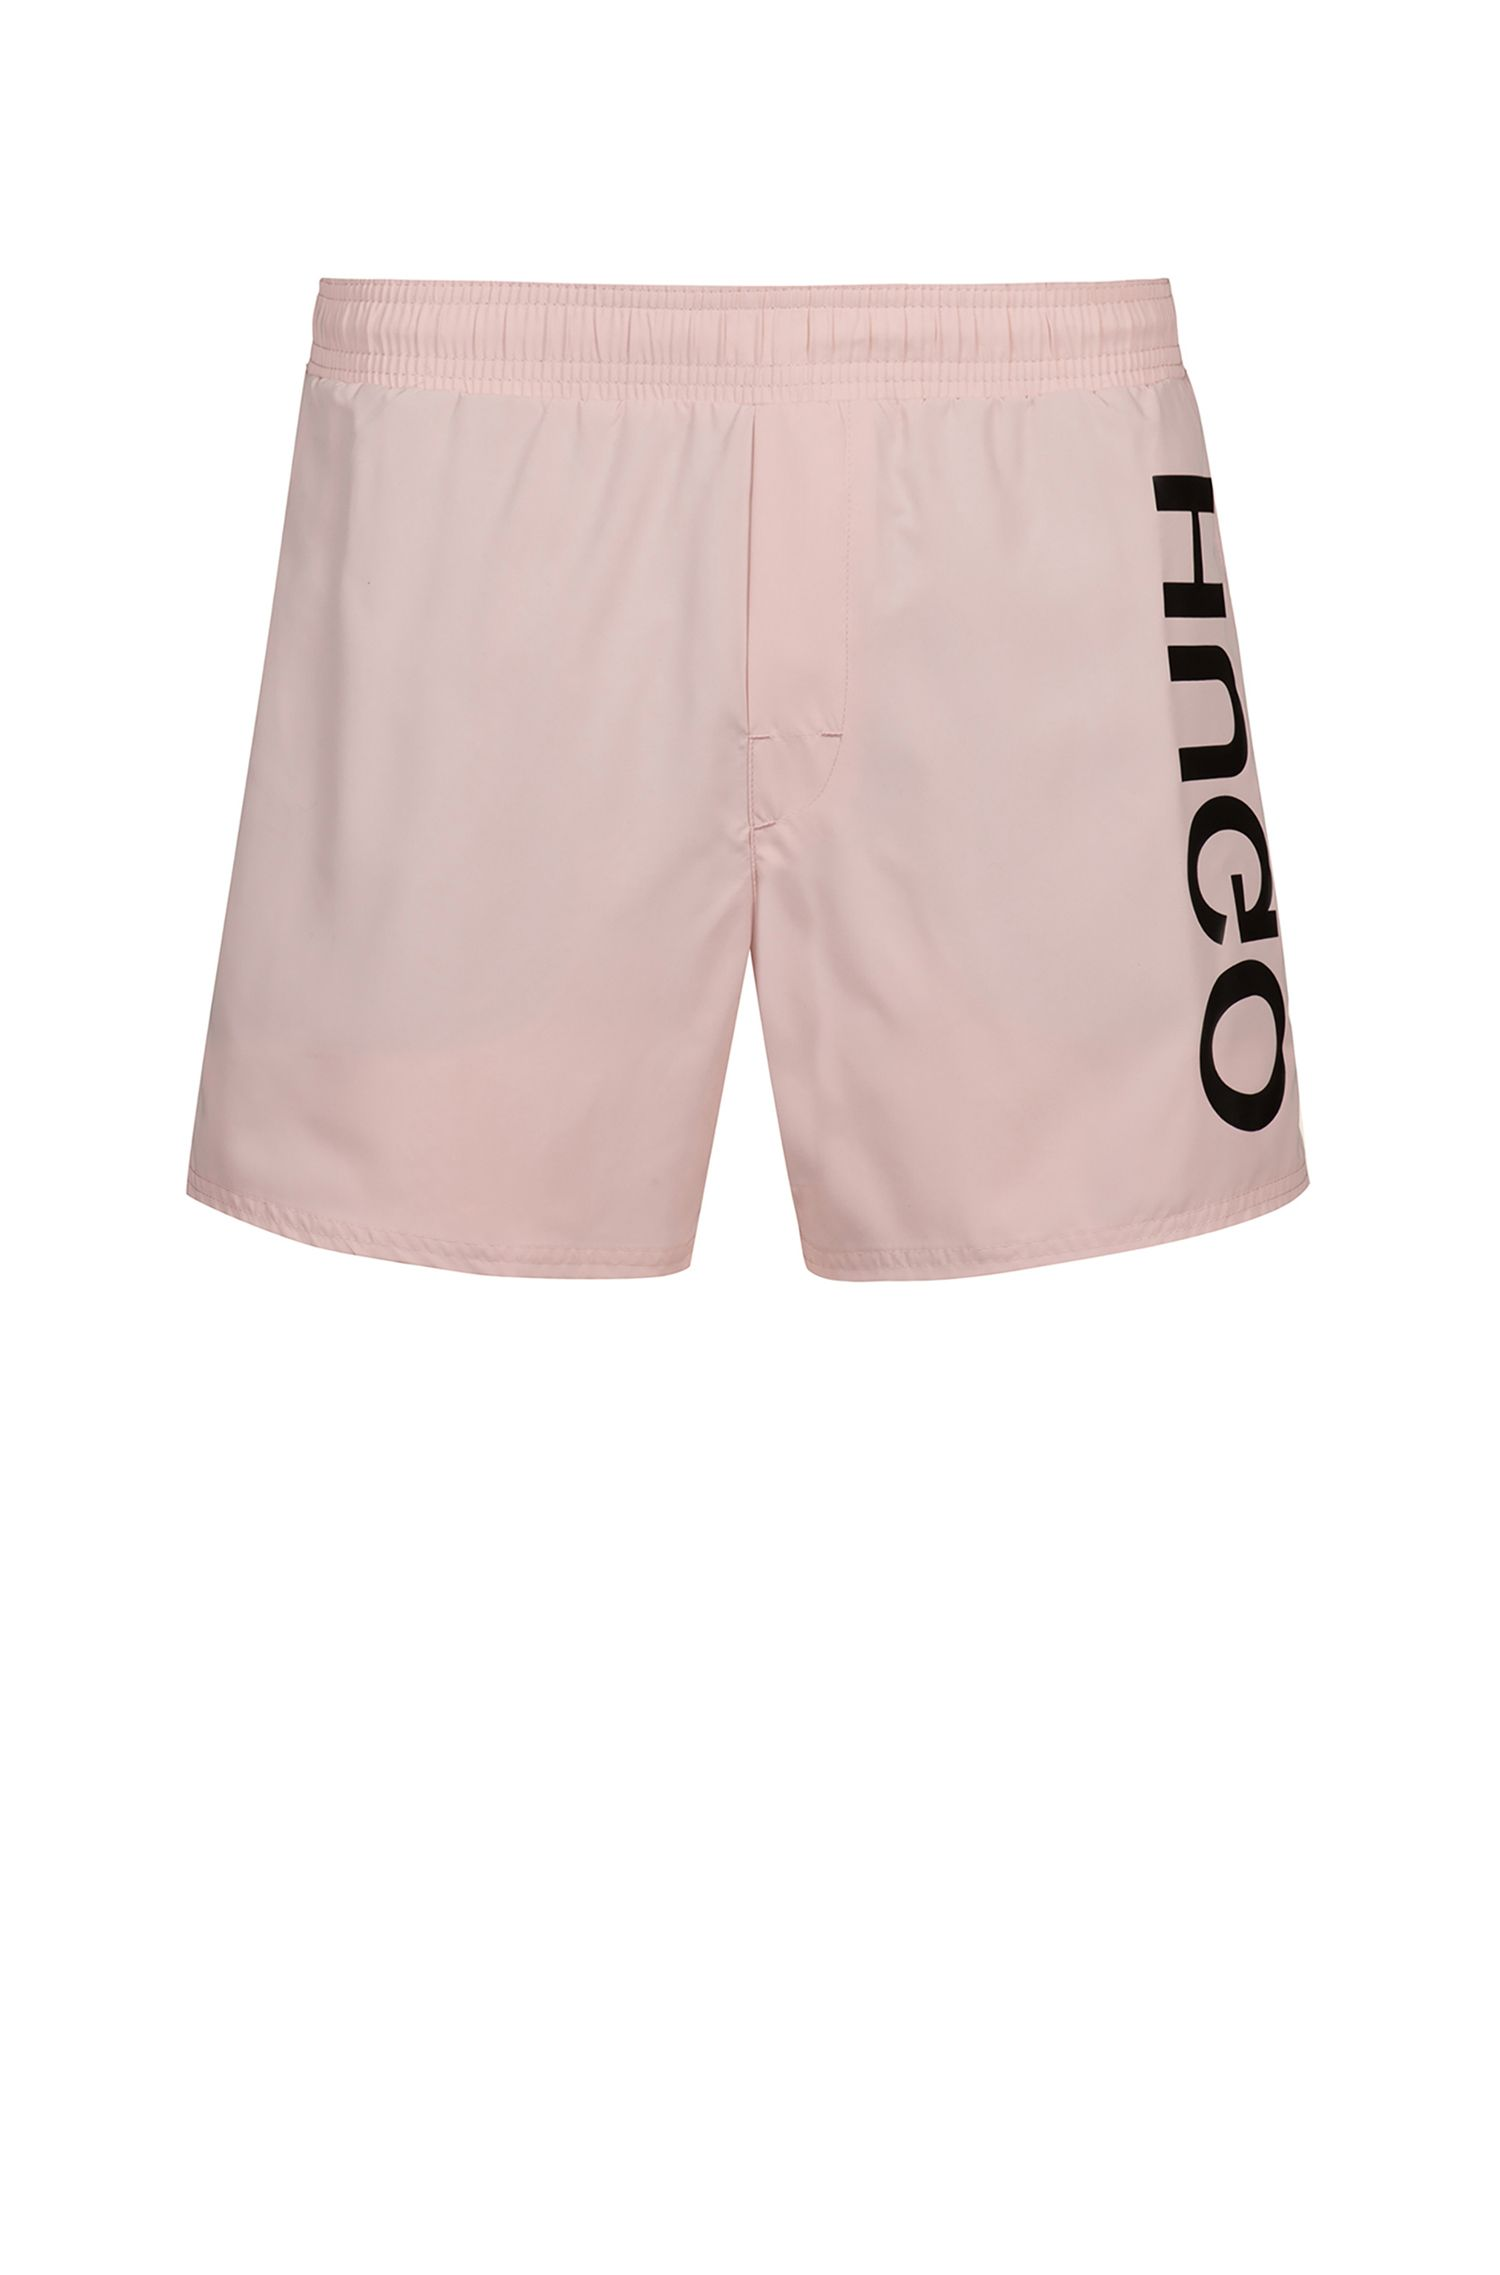 Quick-drying swim shorts with large-scale reverse logo, light pink